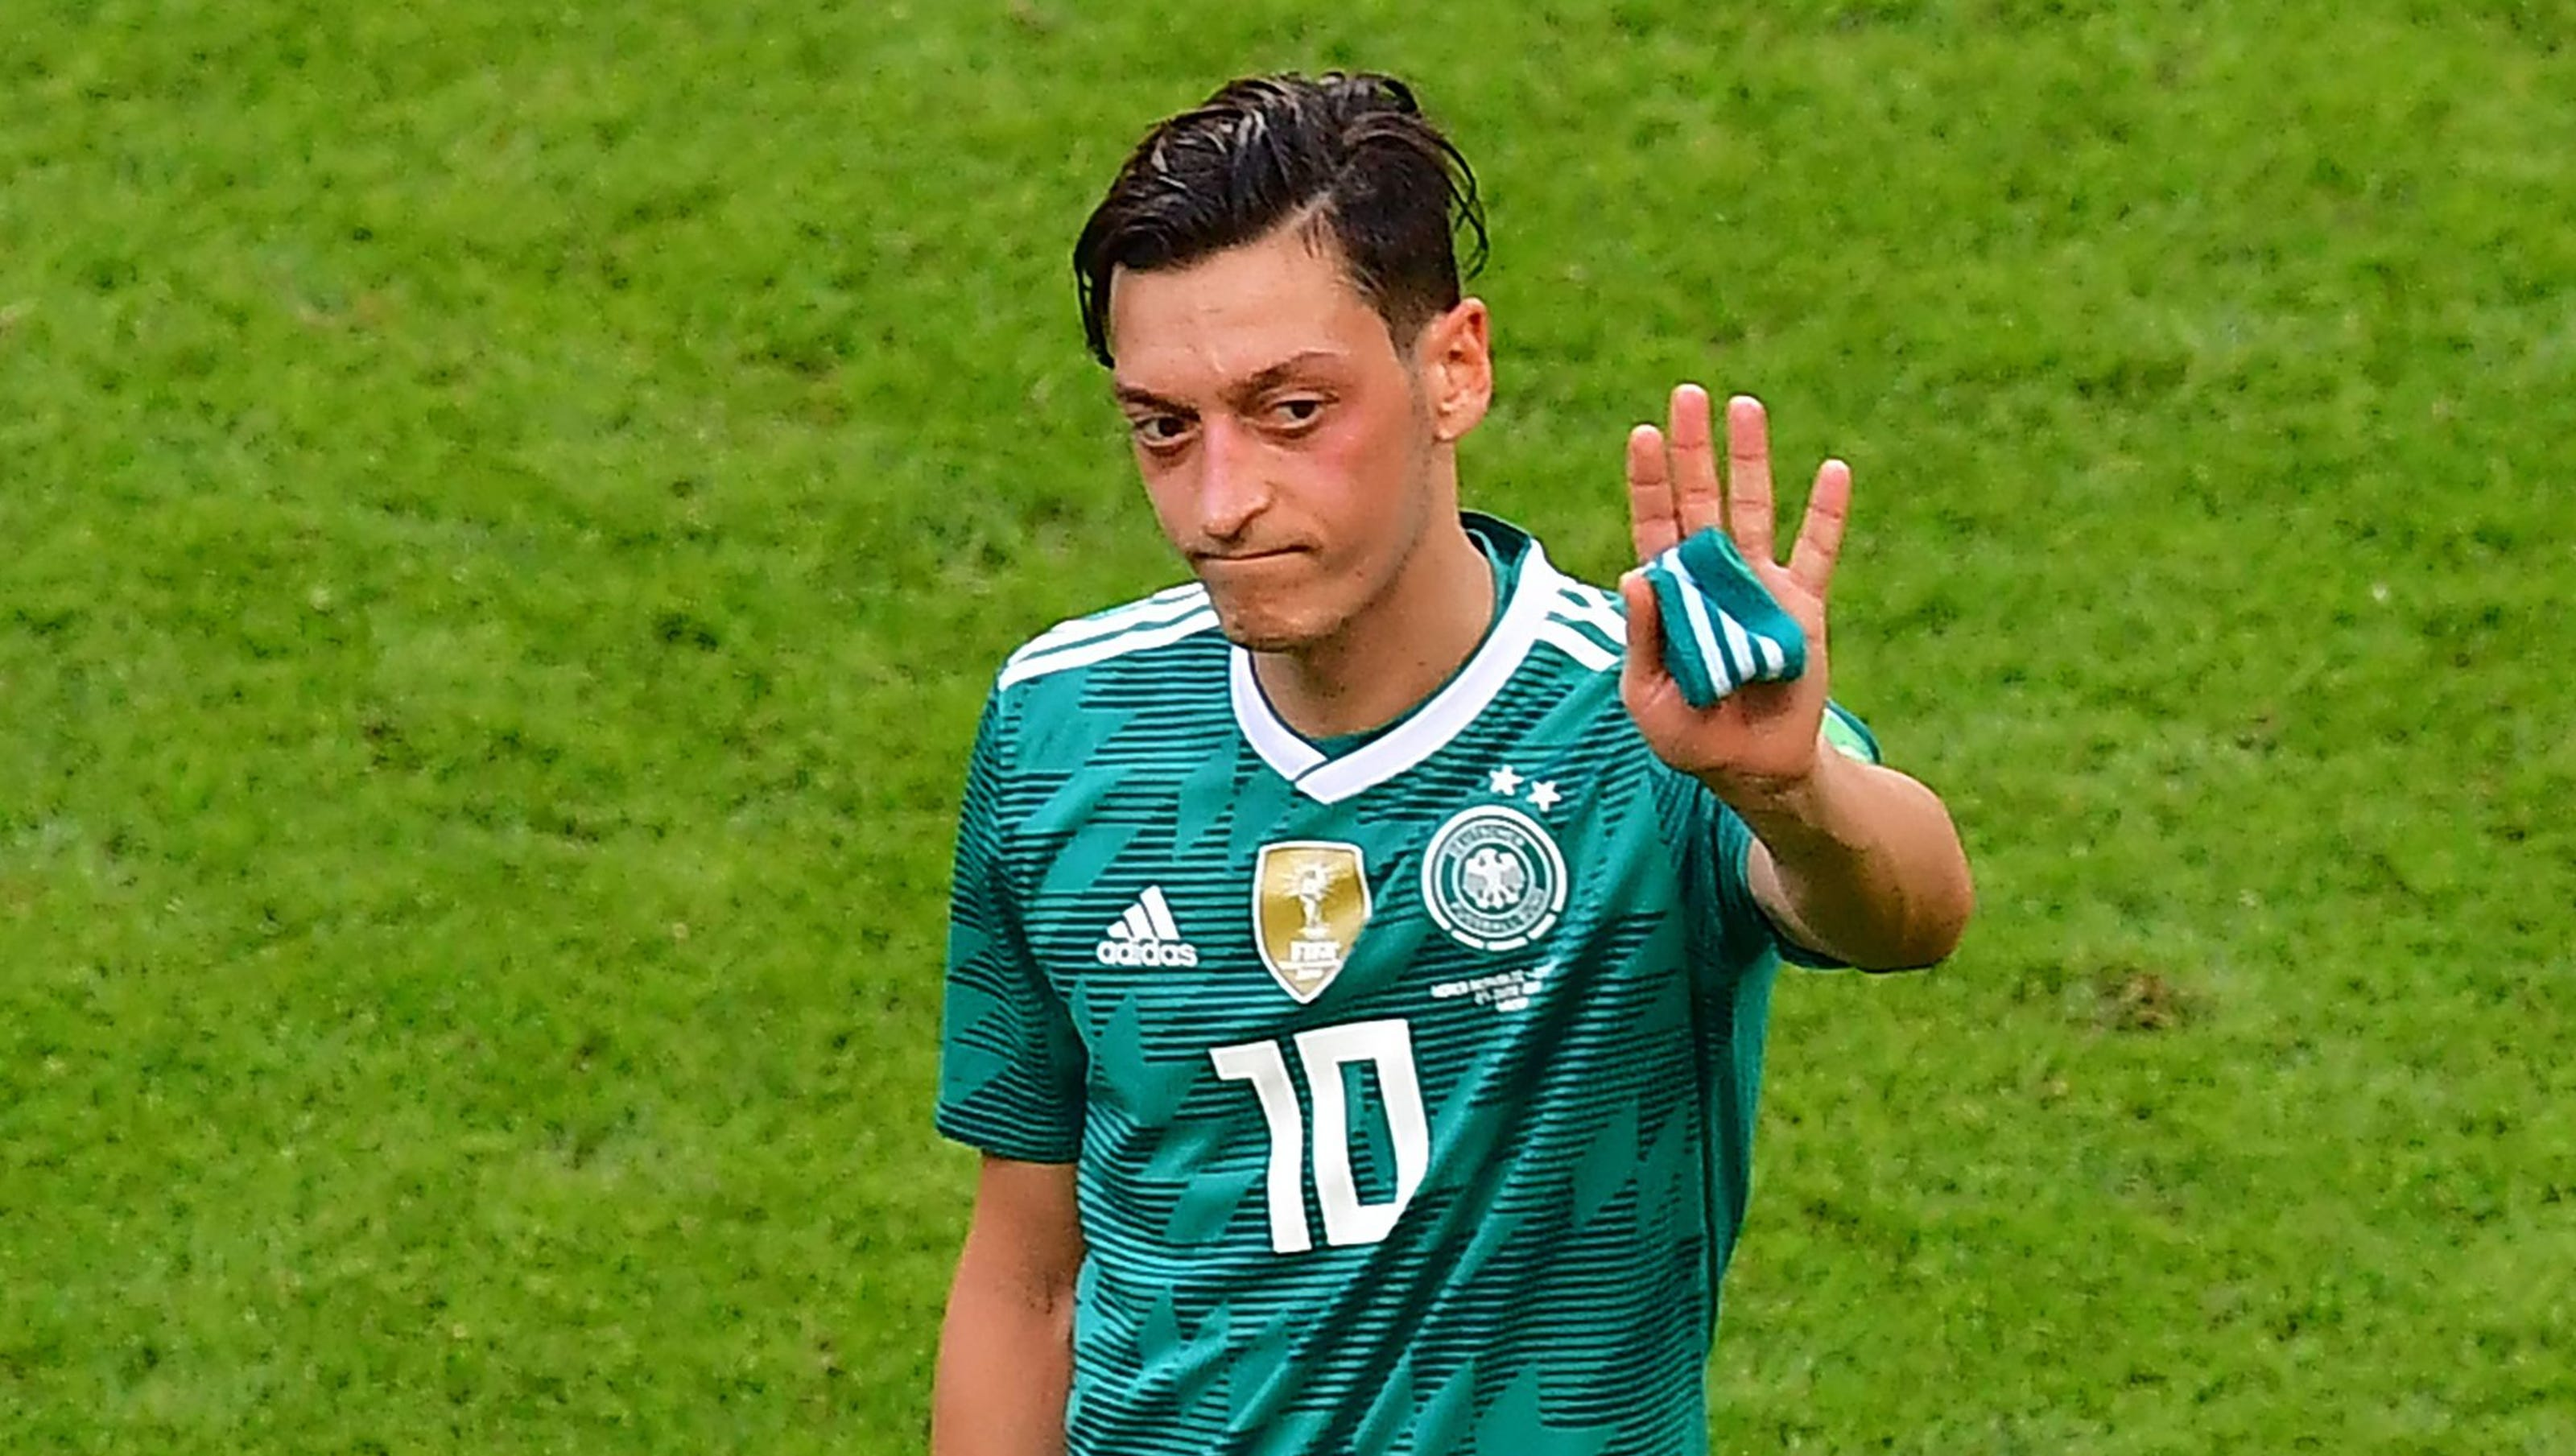 Mesut Ozil quits German national soccer group, citing 'racism and disrespect' thumbnail